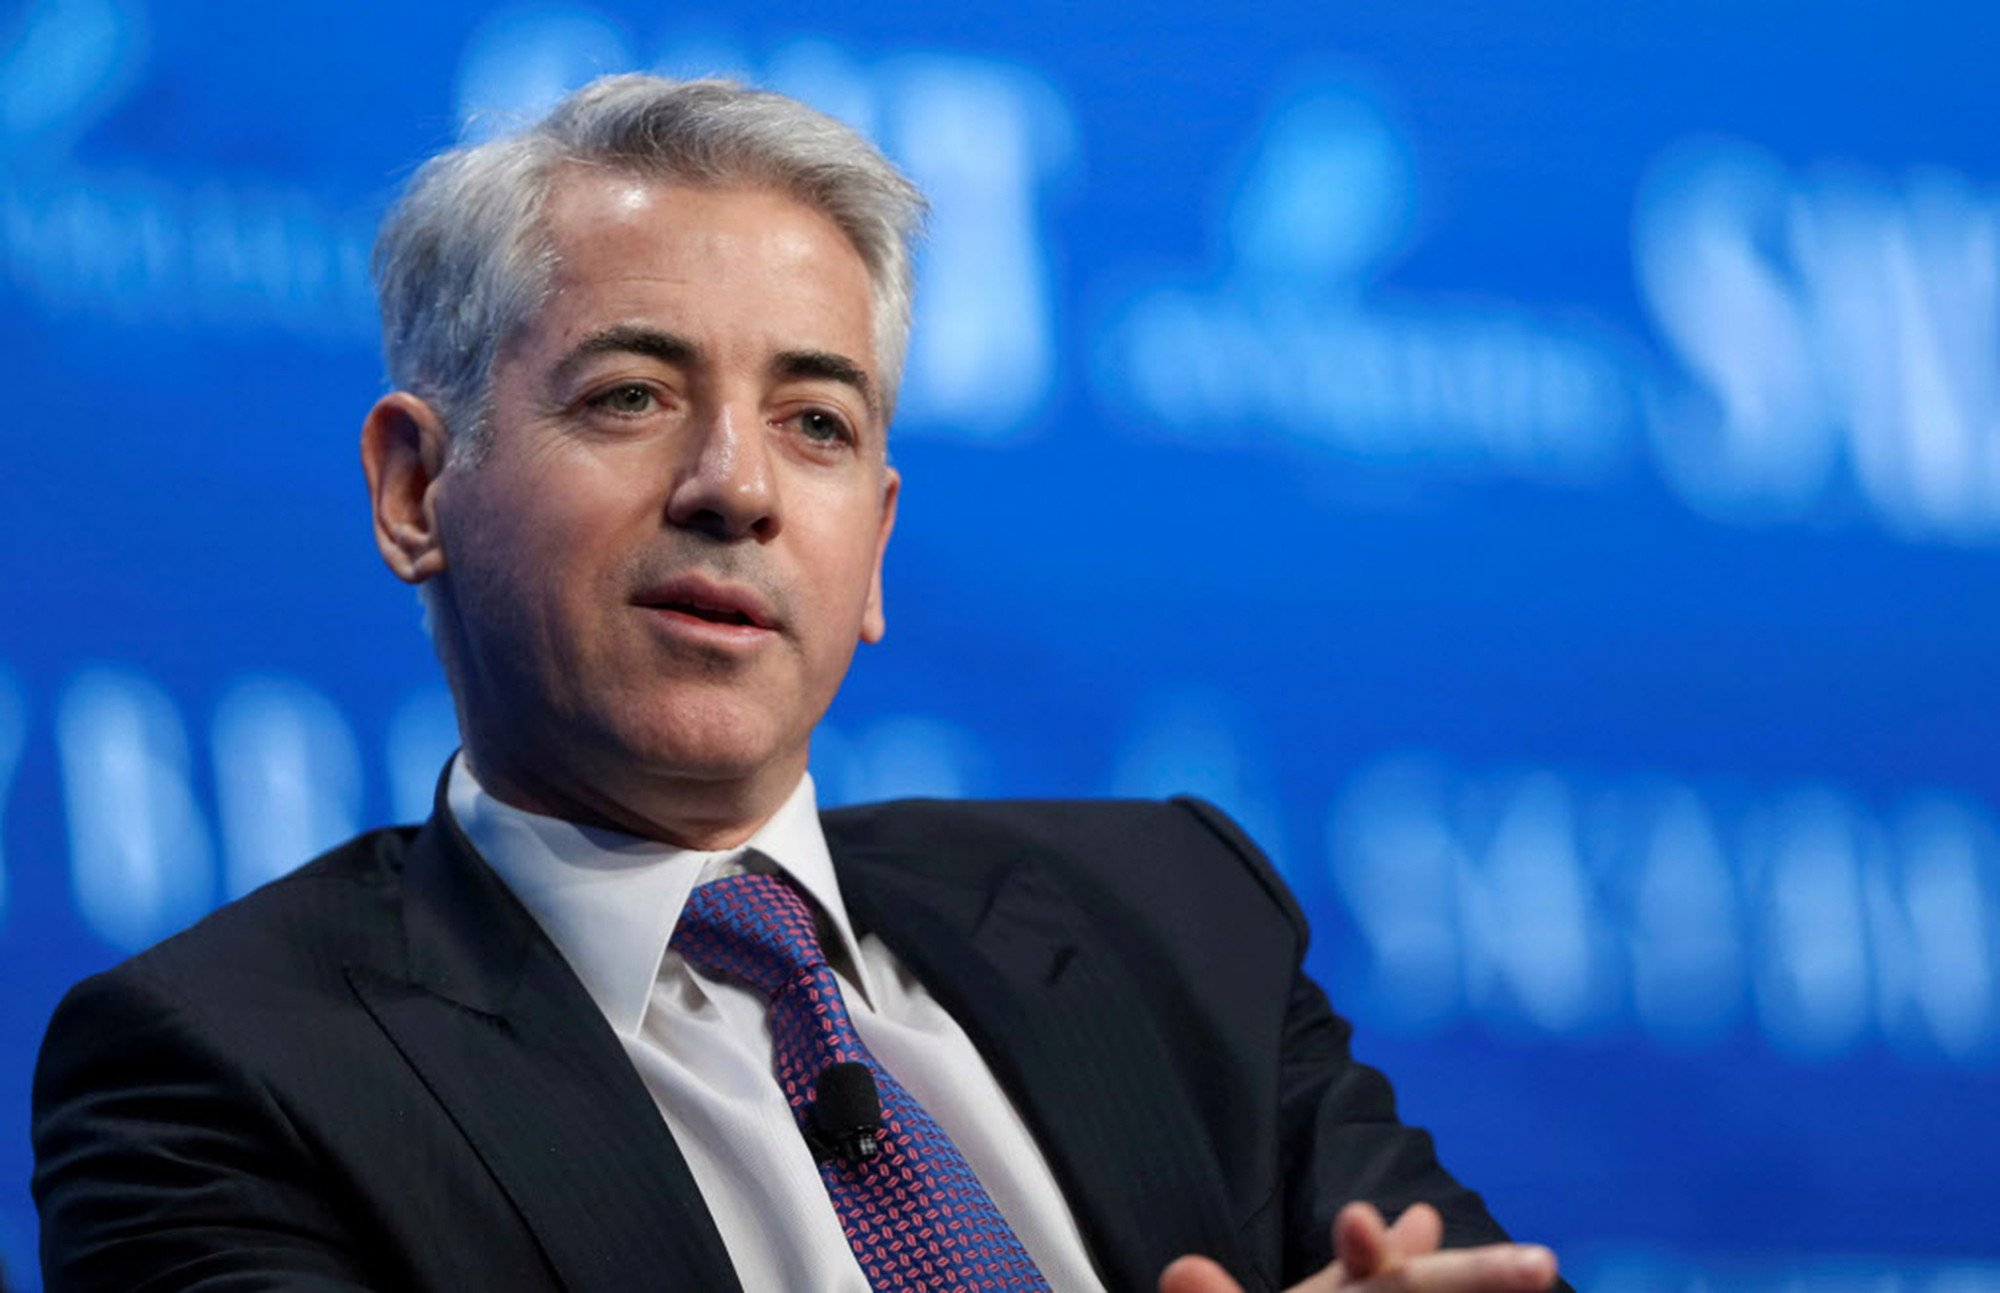 Ackman's hedge fund simplifies focus after prolonged losses